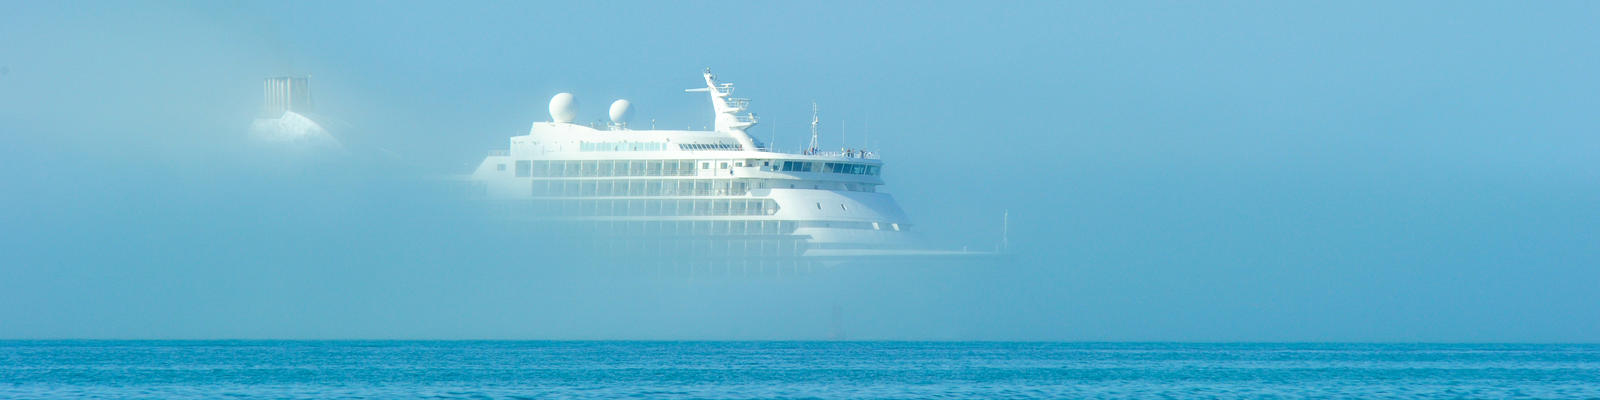 Cruise ship emerging from the fog in Key West. (Photo: HeliHead/Shutterstock)